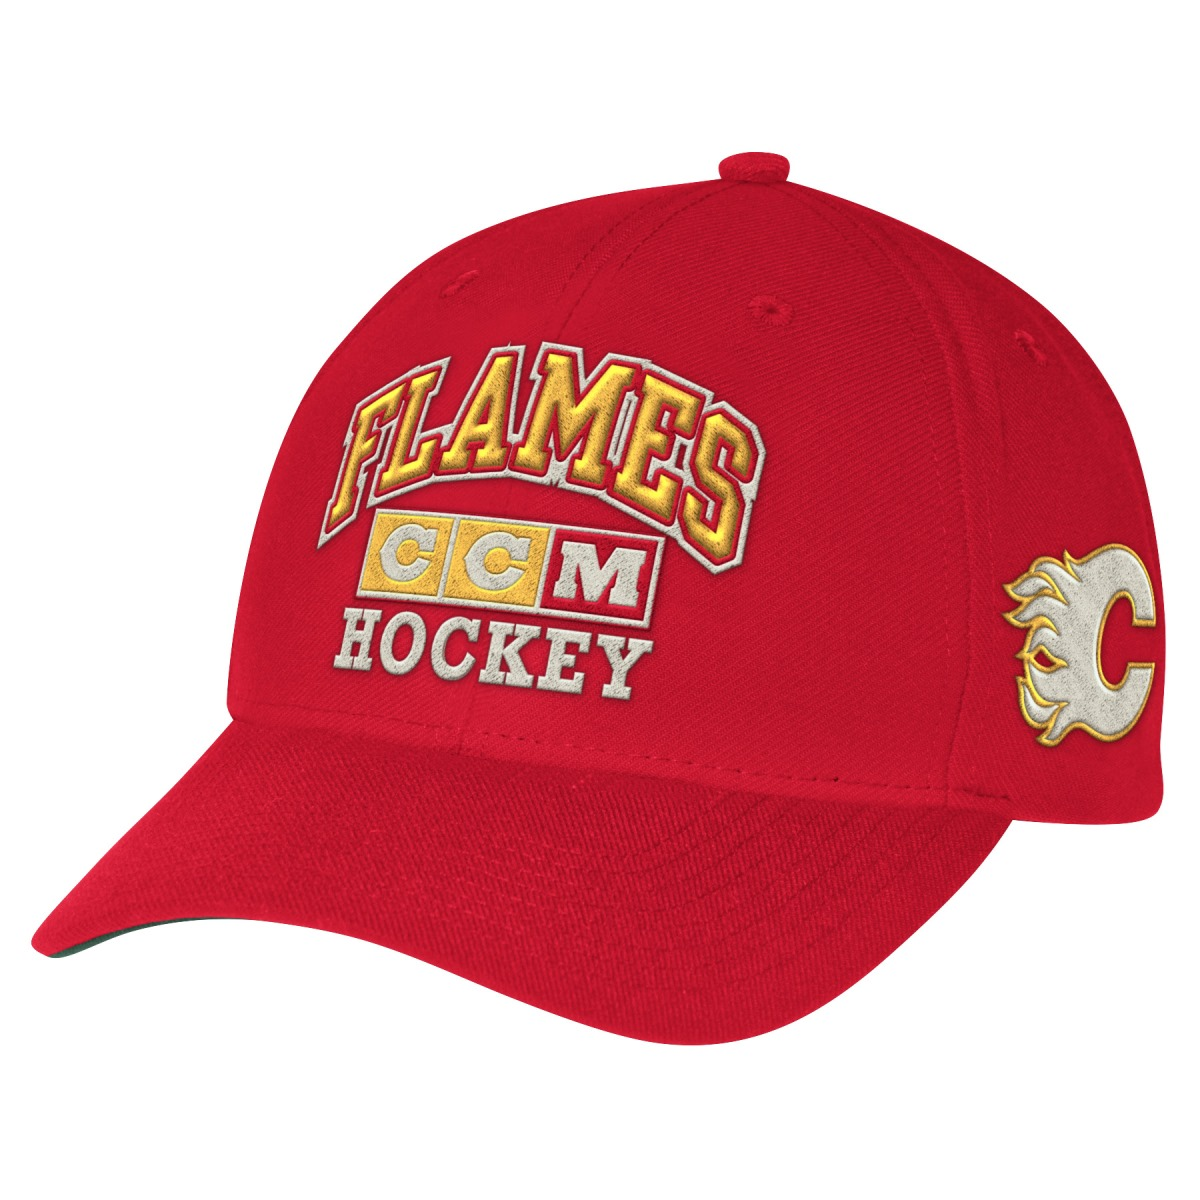 "Calgary Flames CCM NHL ""Vintage"" Structured Adjustable Hat"